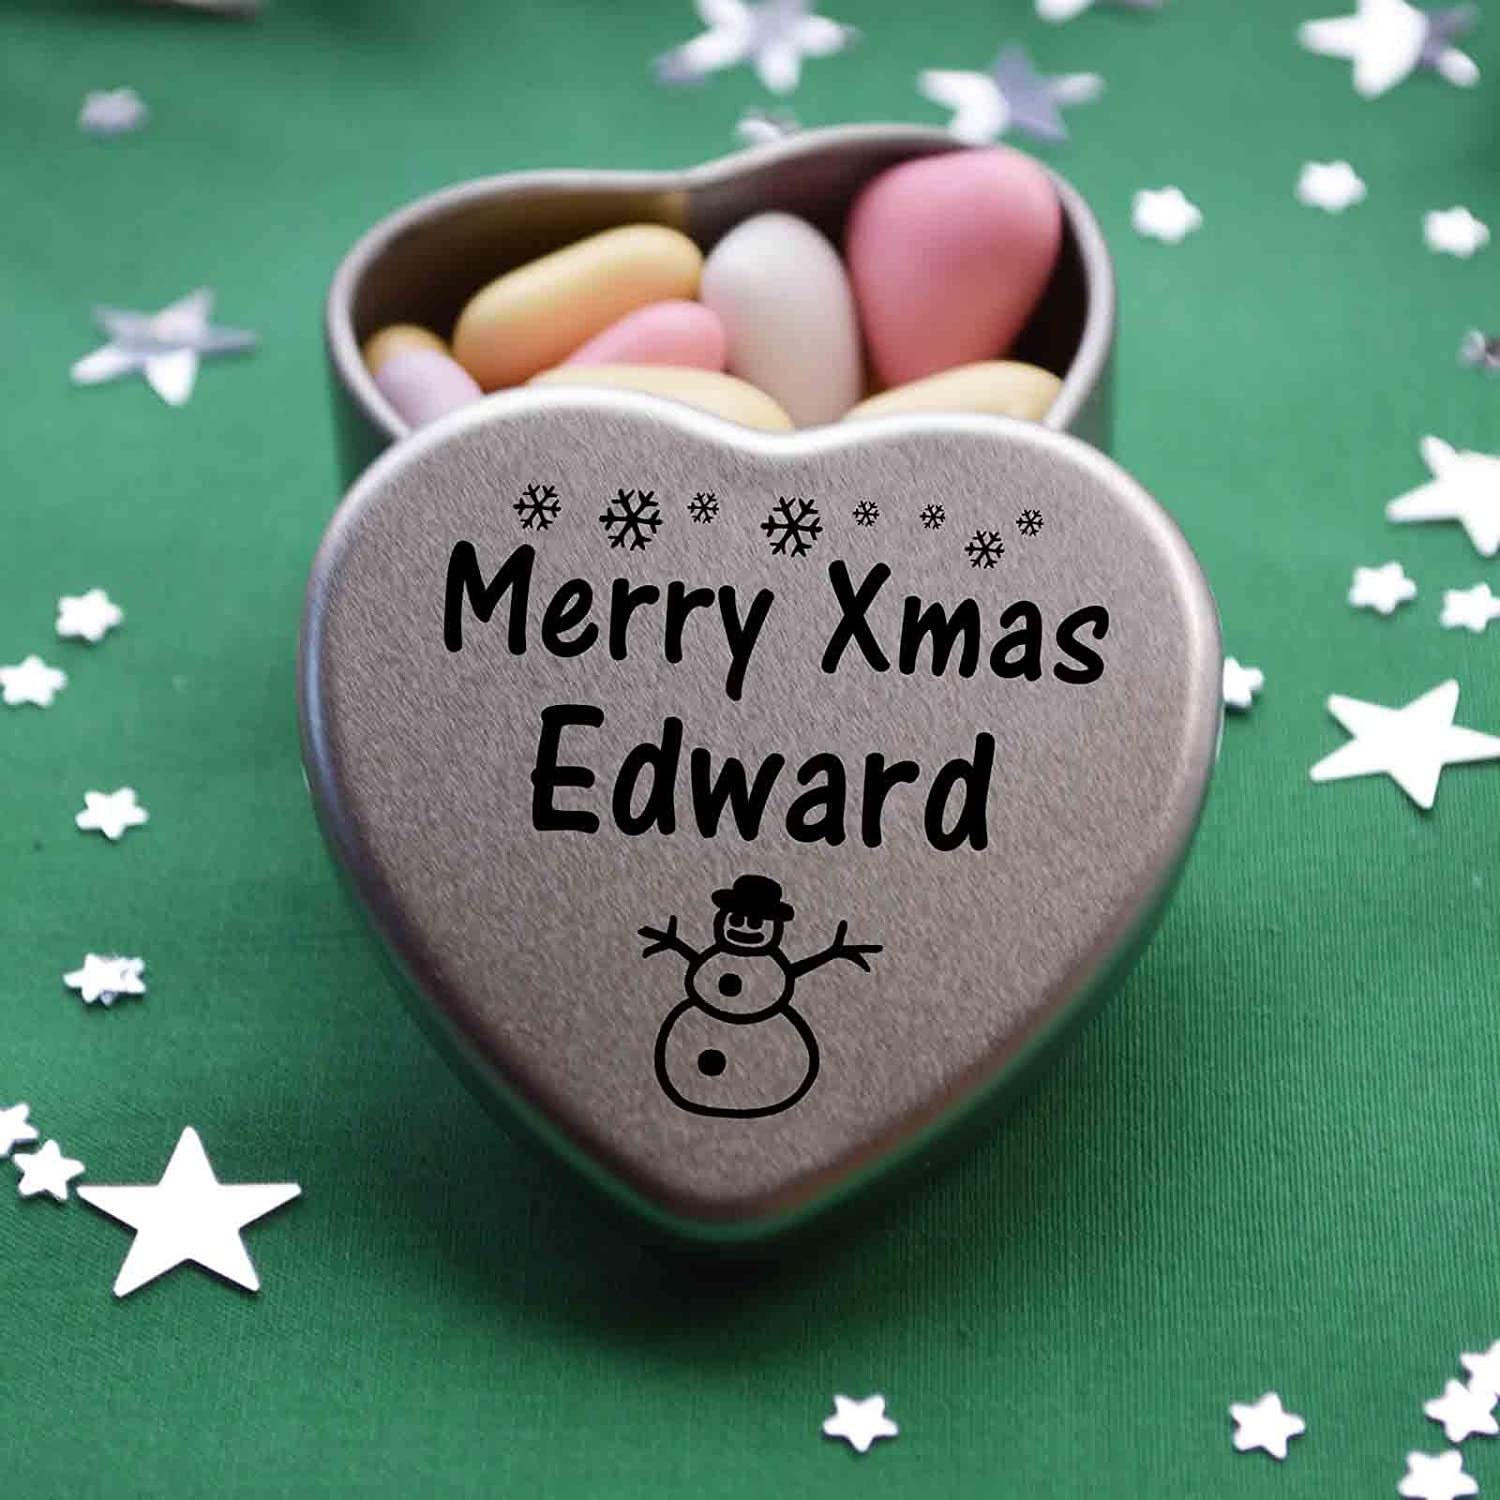 Merry Xmas Edward Mini Heart Gift Tin with Chocolates Fits Beautifully in the palm of your hand. Great Christmas Present for Edward Makes the perfect Stocking Filler or Card alternative. Tin Dimensions 45mmx45mmx20mm. Three designs Available, Father Chris